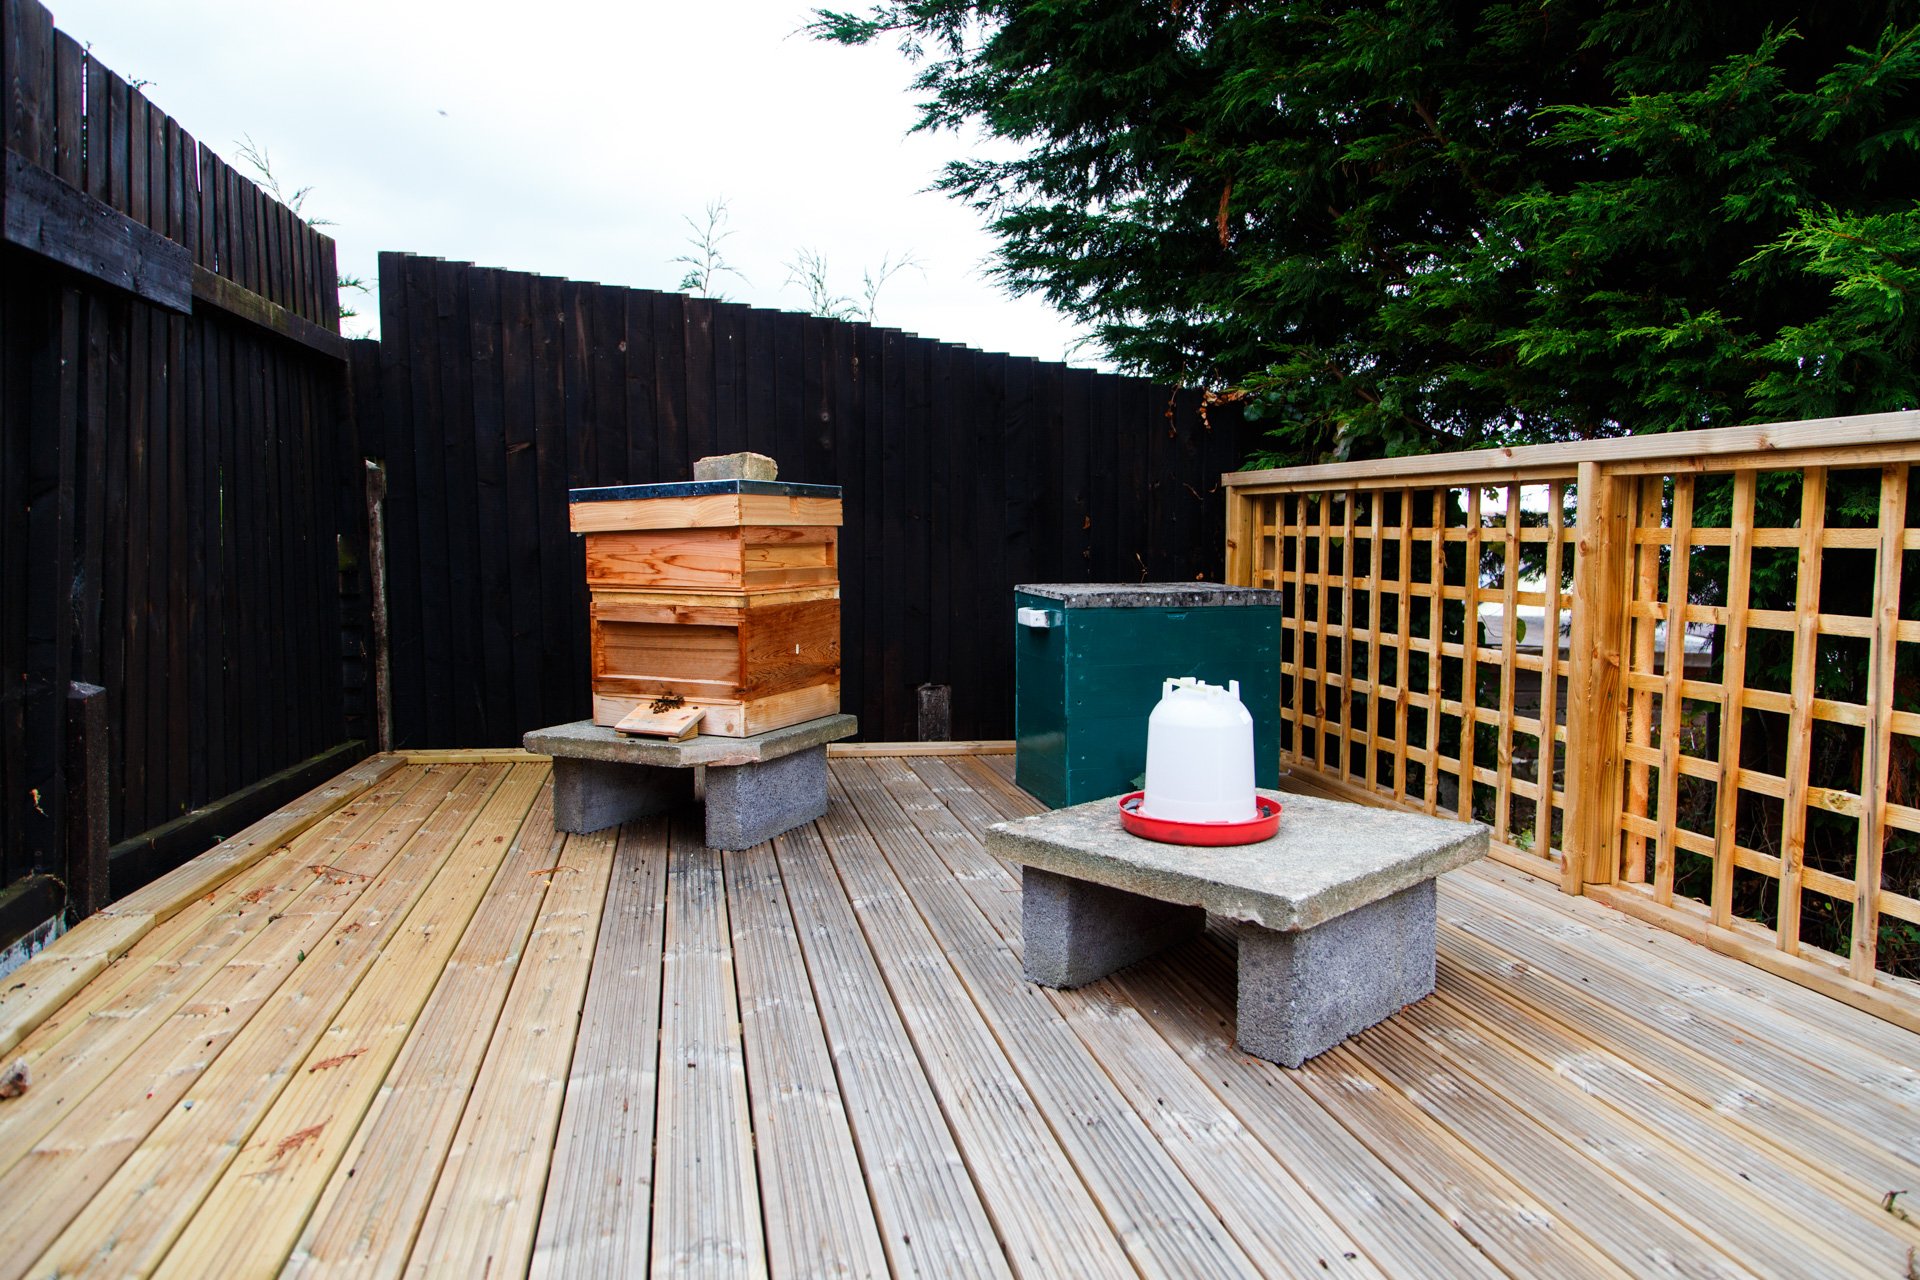 The hive (left) alongside a green storage box/workspace and a jug with a shallow water supply for the bees (if needed).